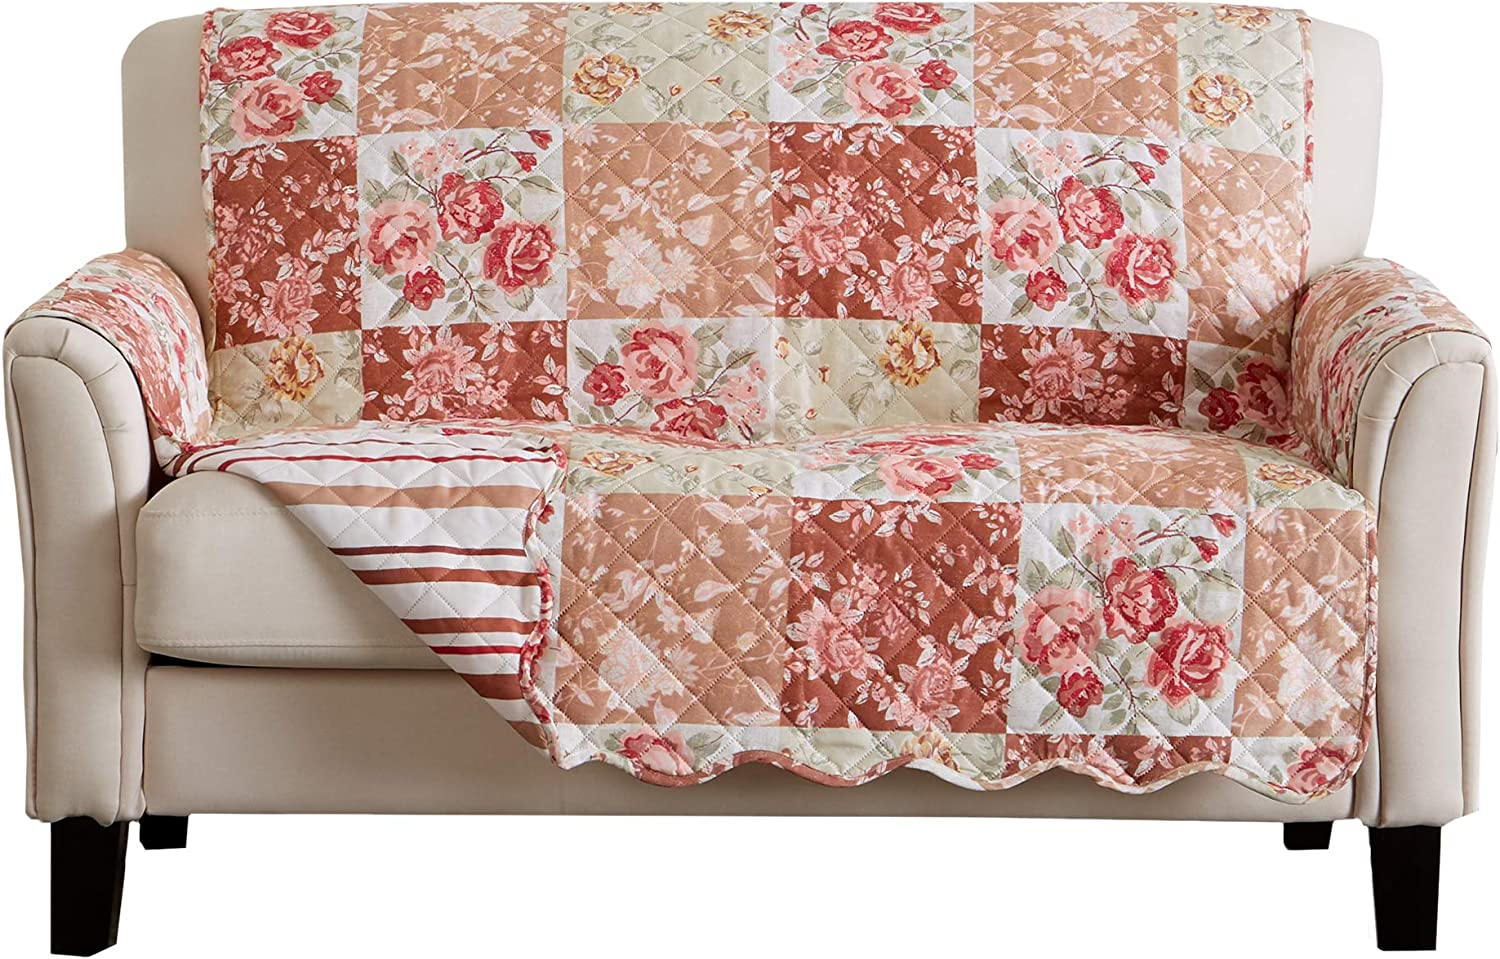 Great Bay Home Reversible Floral Patchwork Furniture Protector. Scalloped Edge Stain Resistant Printed Furniture Protector. Maribel Collection. (Loveseat, Burgundy/Taupe)